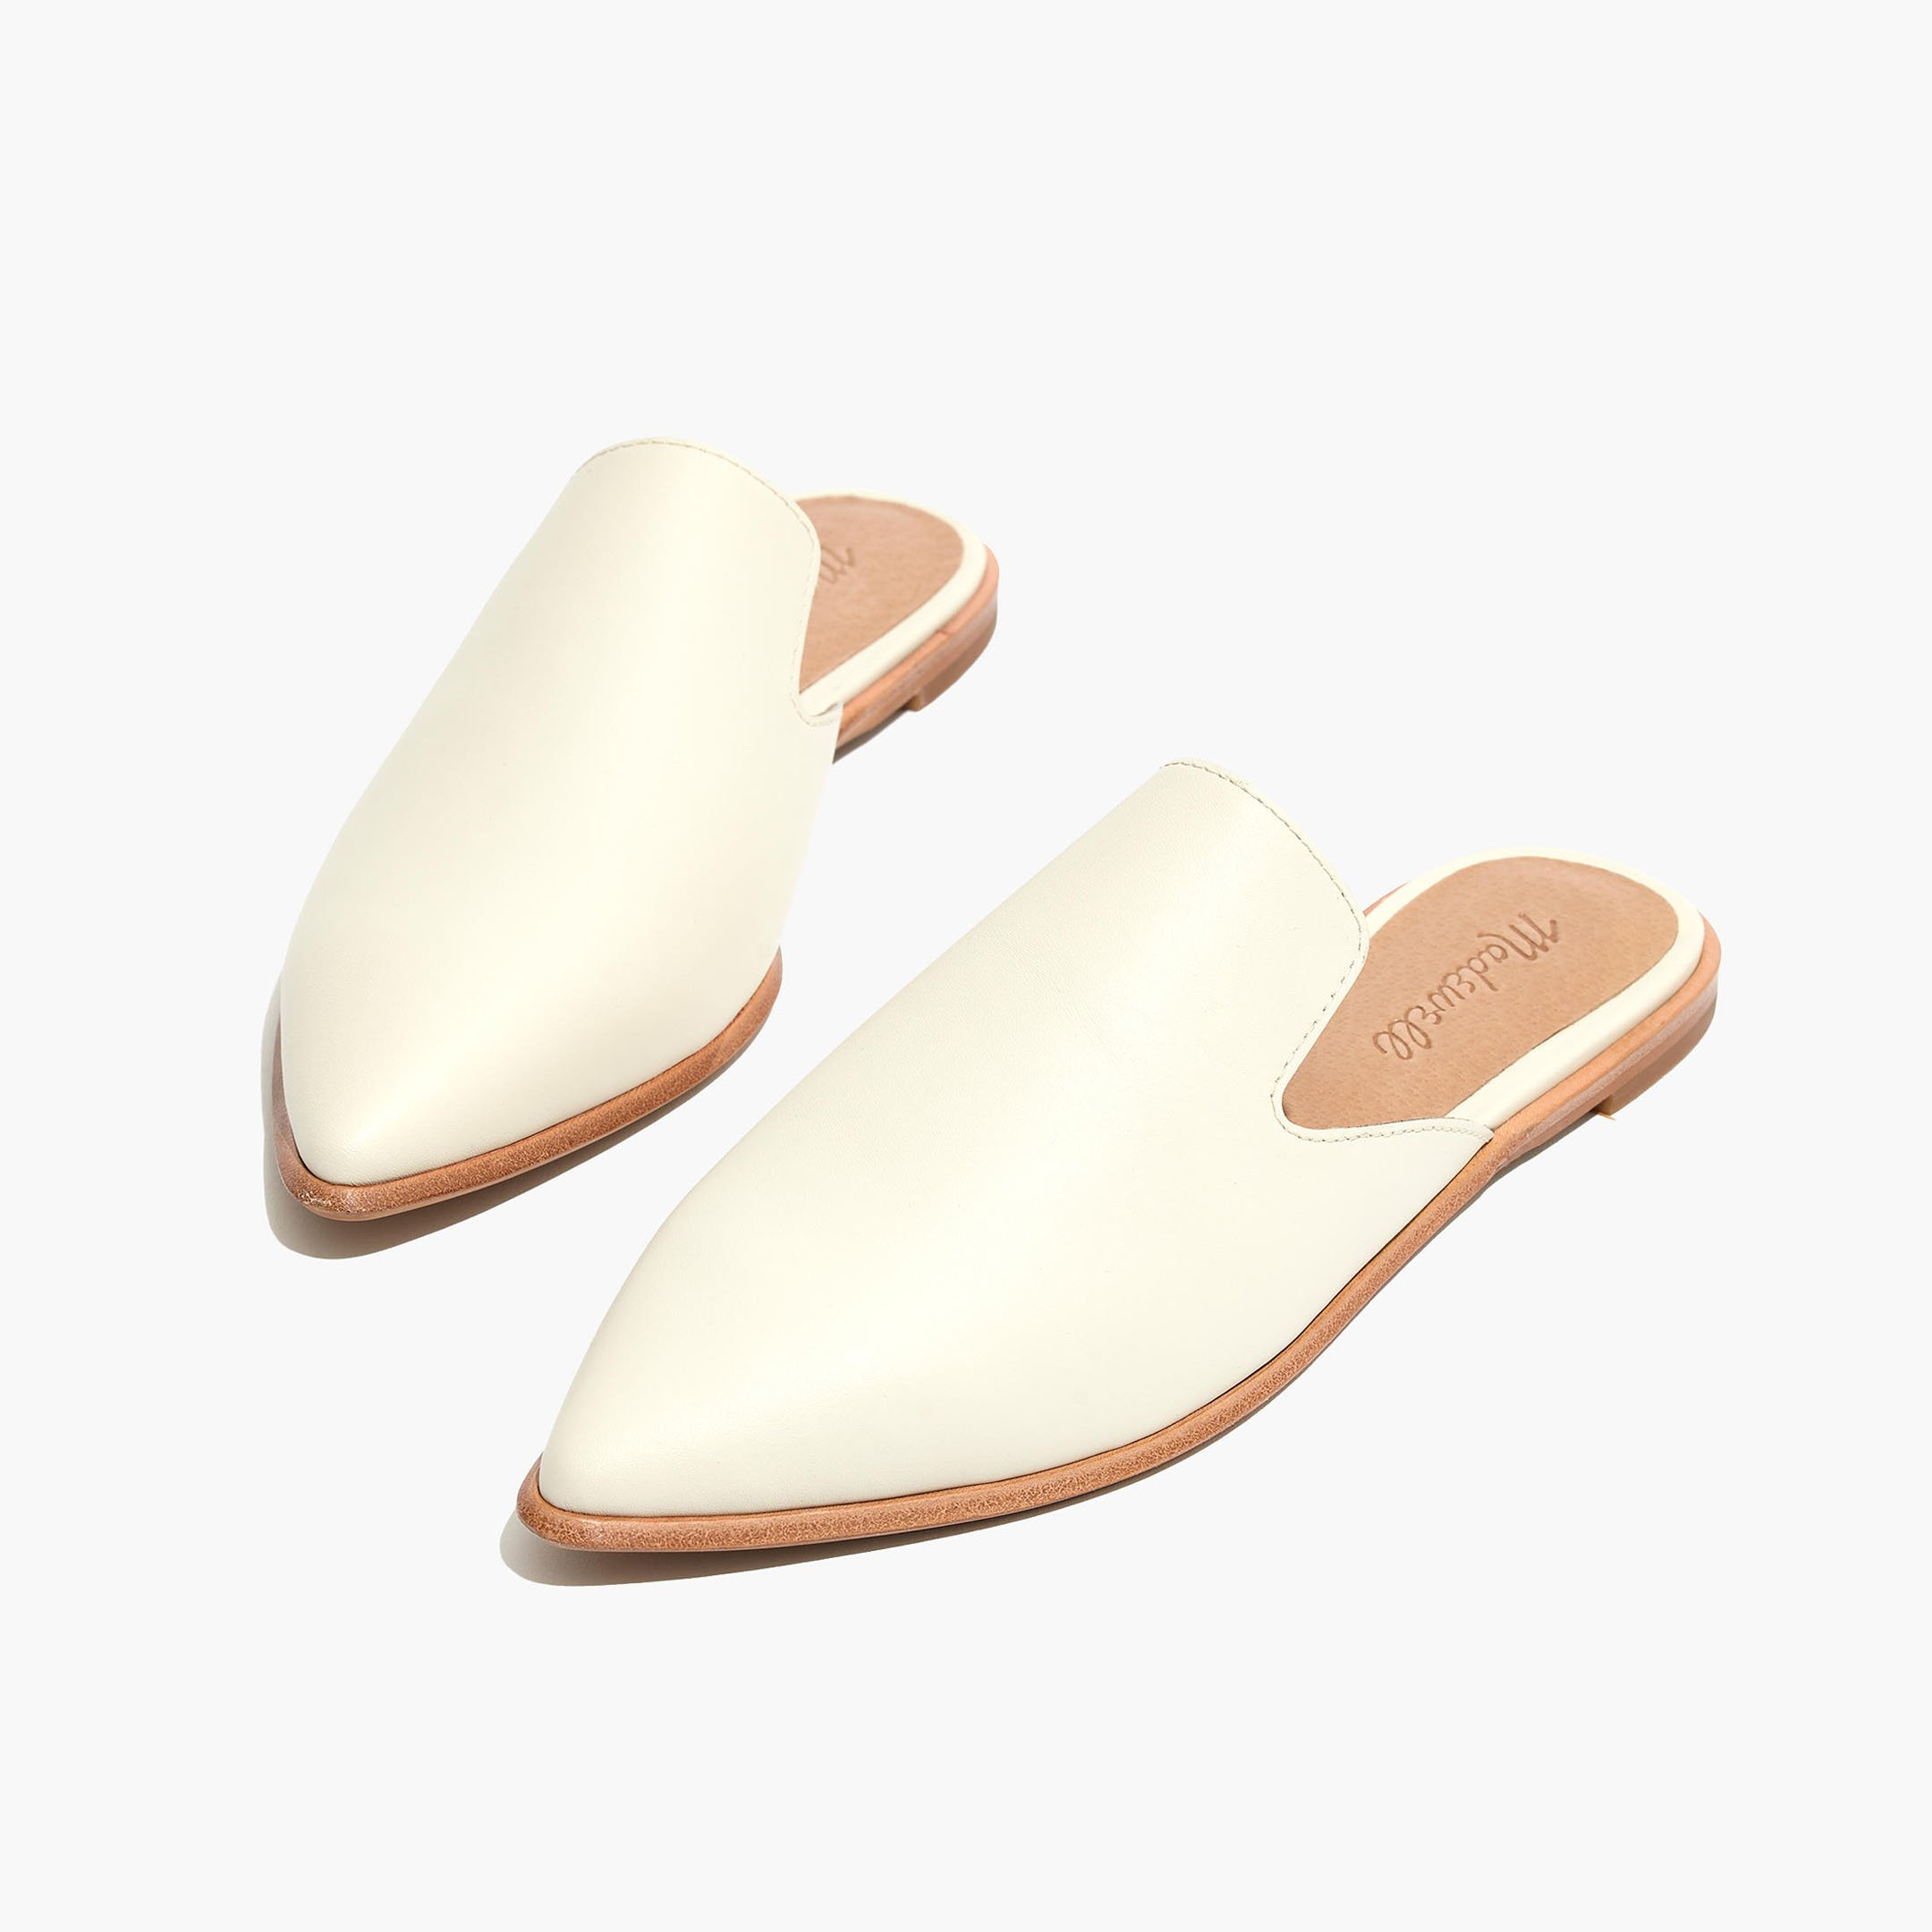 Madewell gemma mules in cream